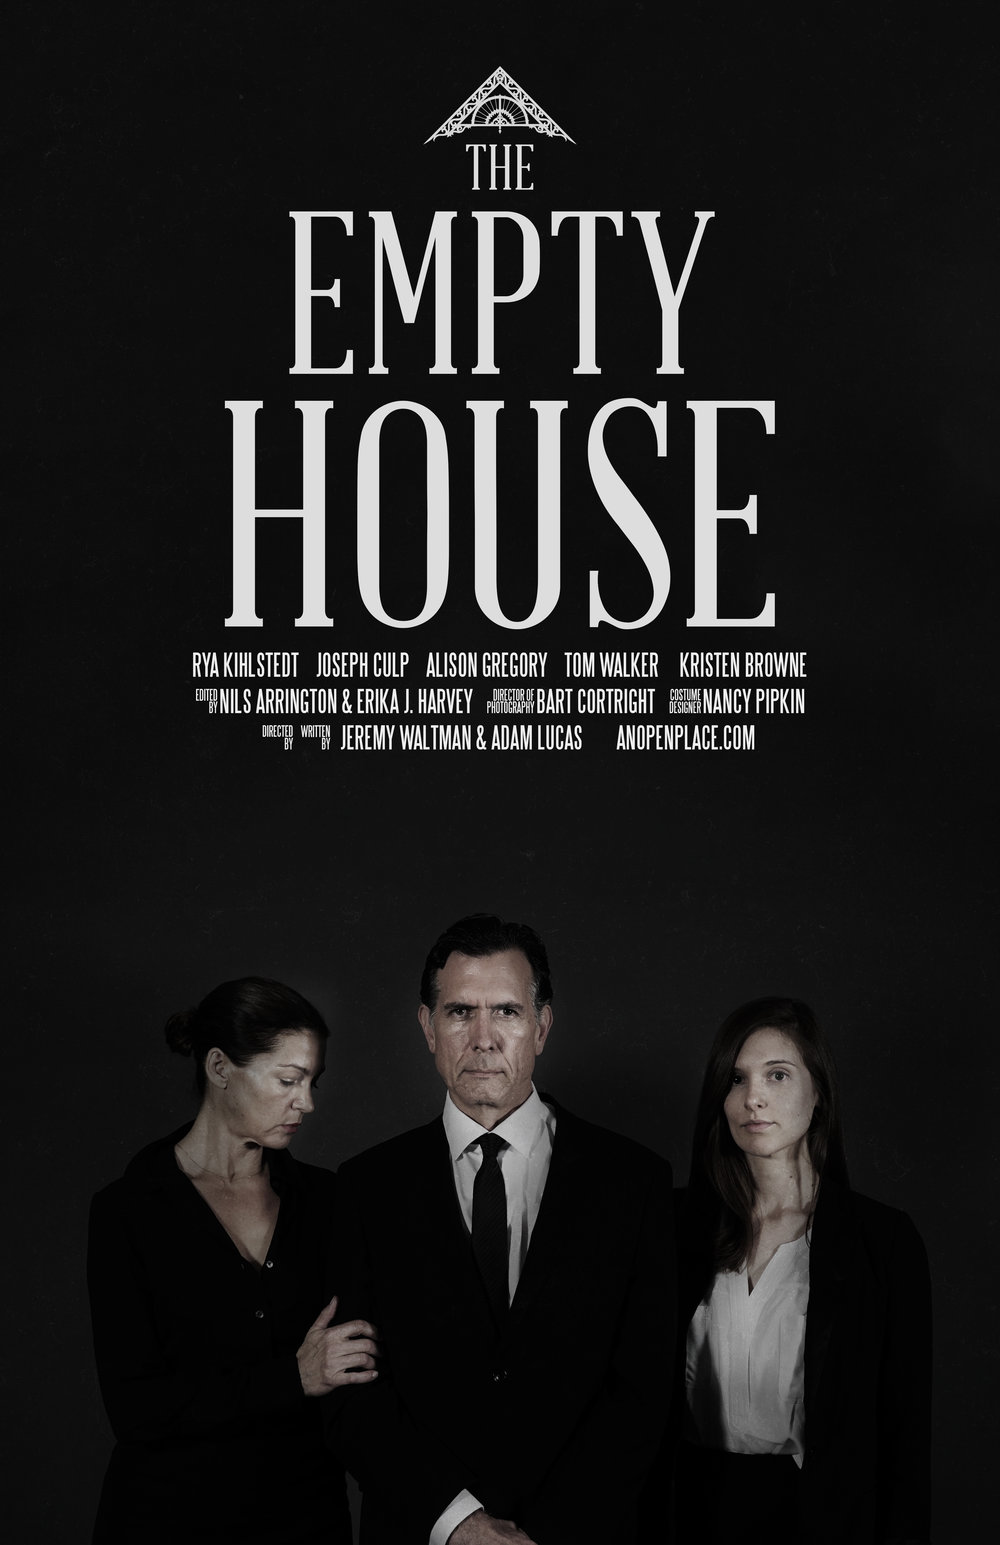 TheEmptyHouse11x17_300dpi.jpg